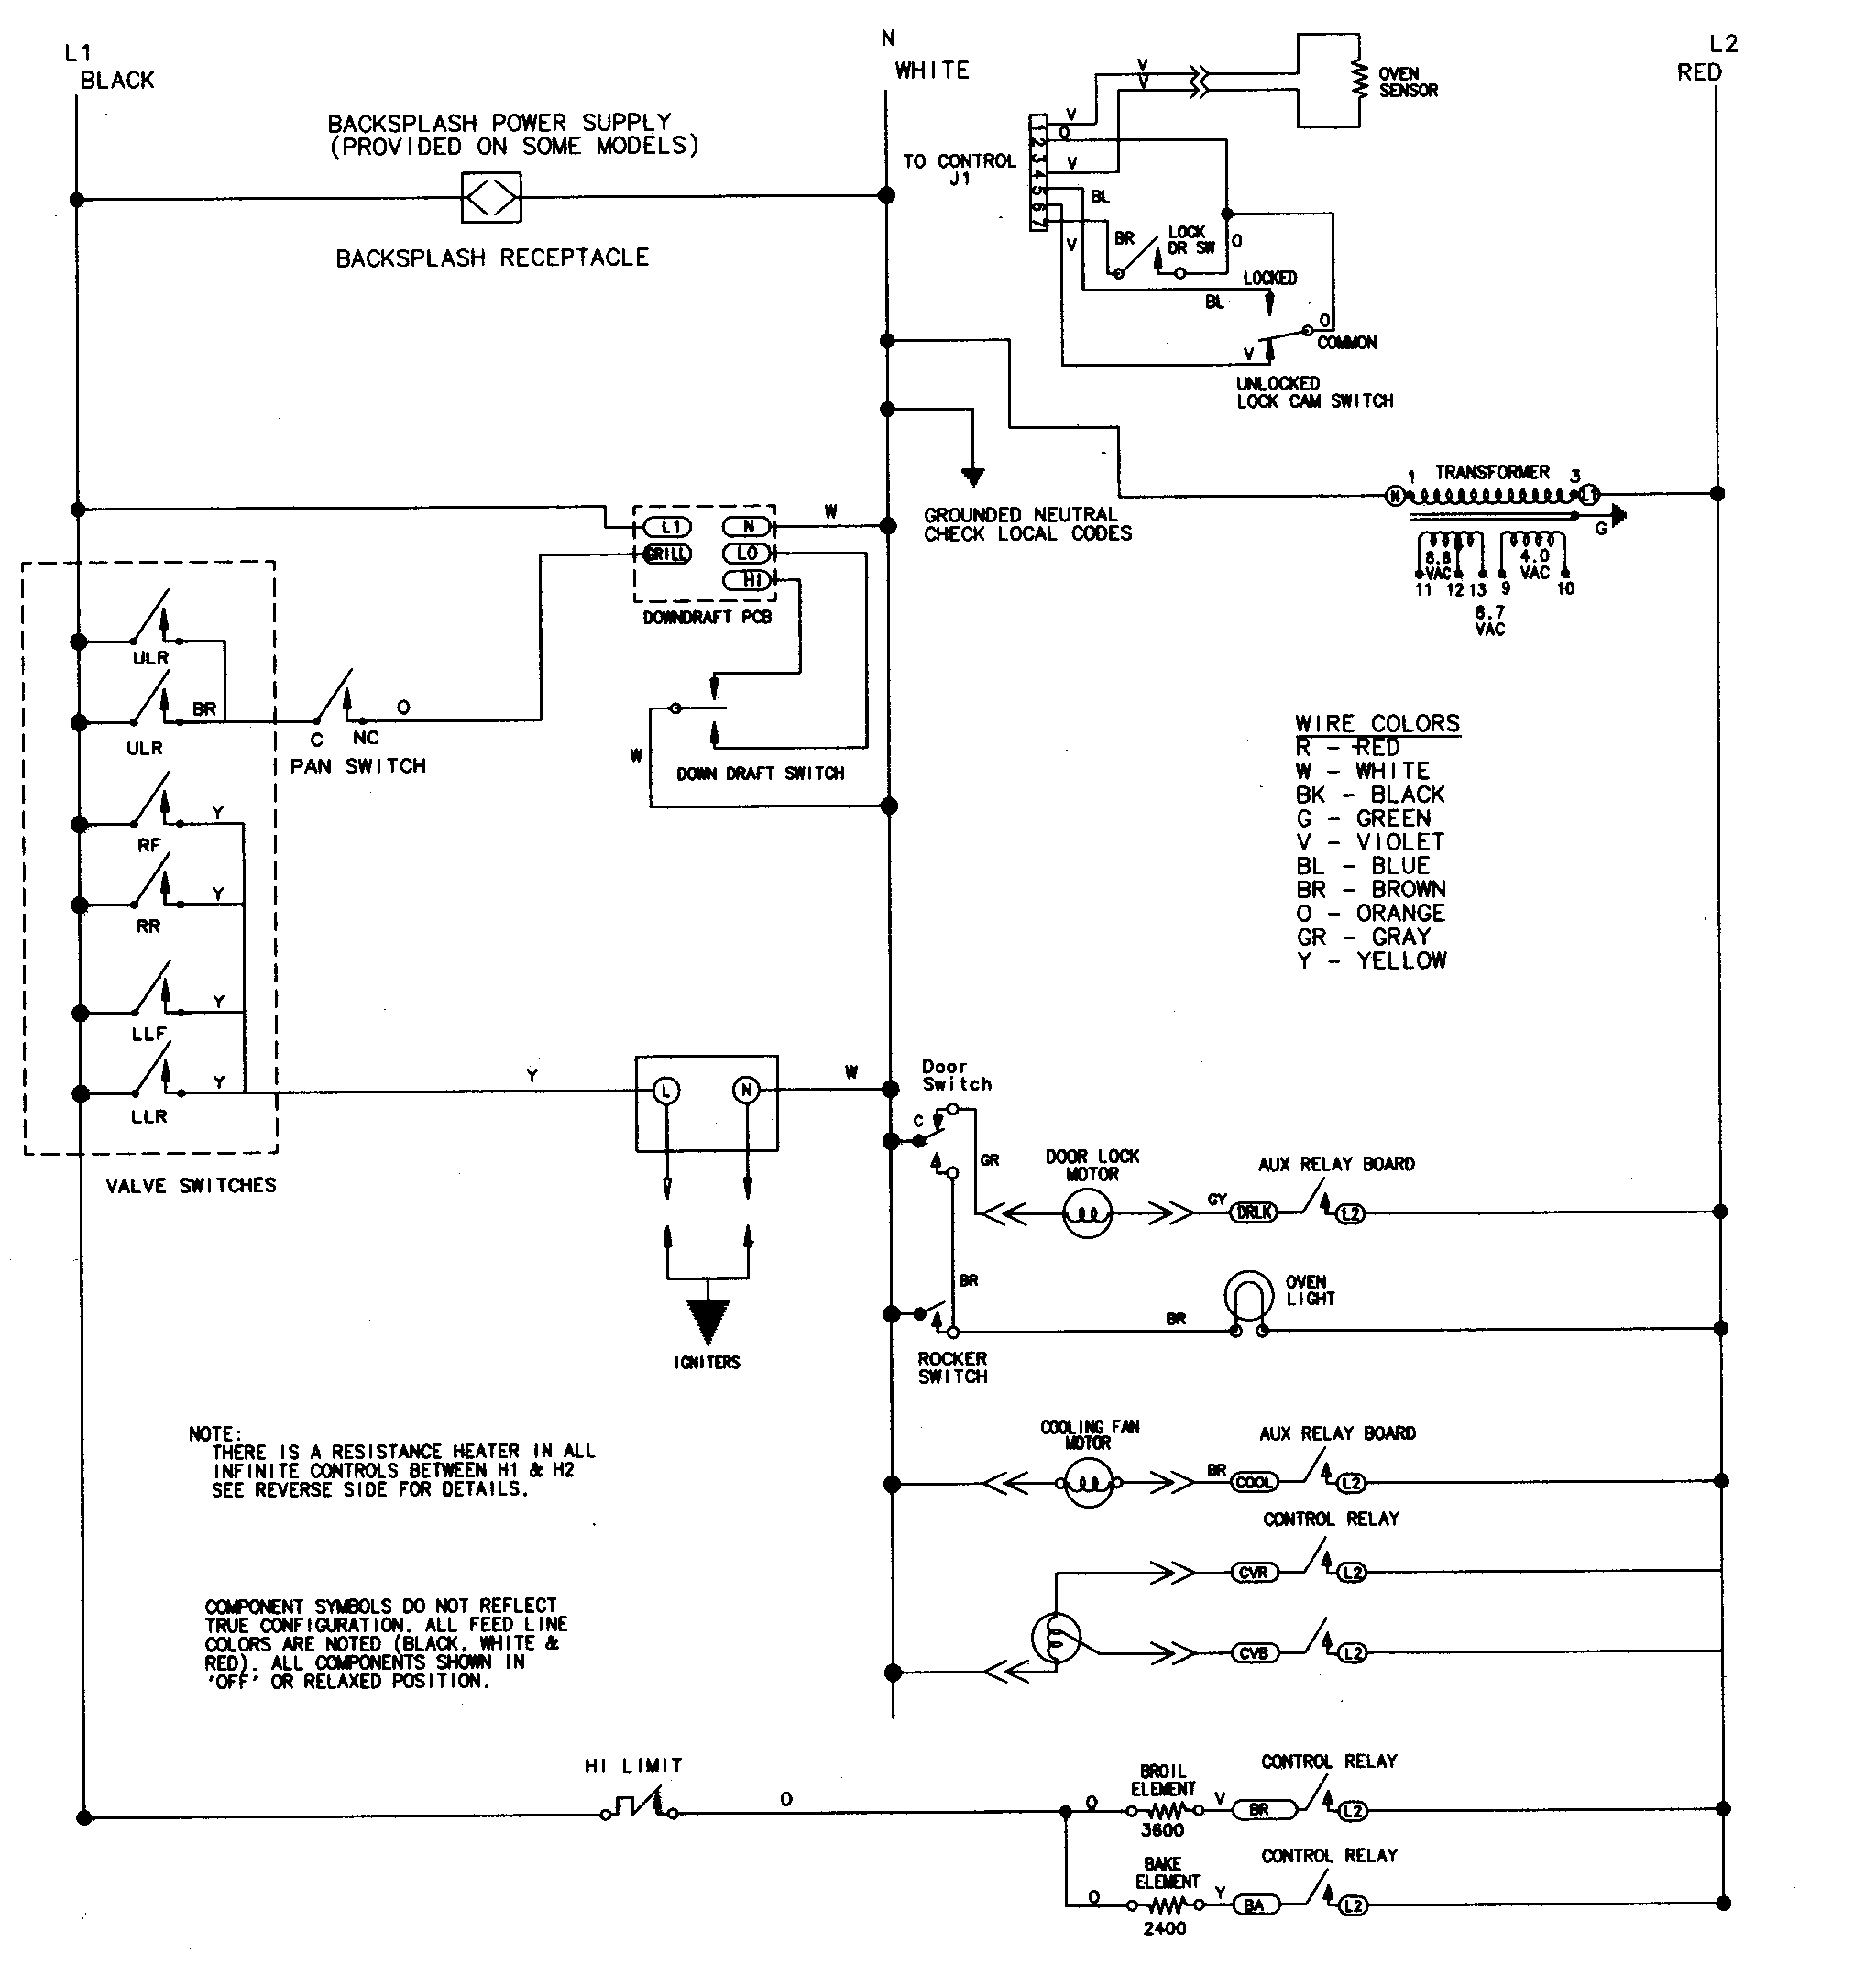 Ge Gas Furnace Wiring Diagram Bgmt Data Air Schematic Electric Fireplace And Get Free Image Thermostat Trane